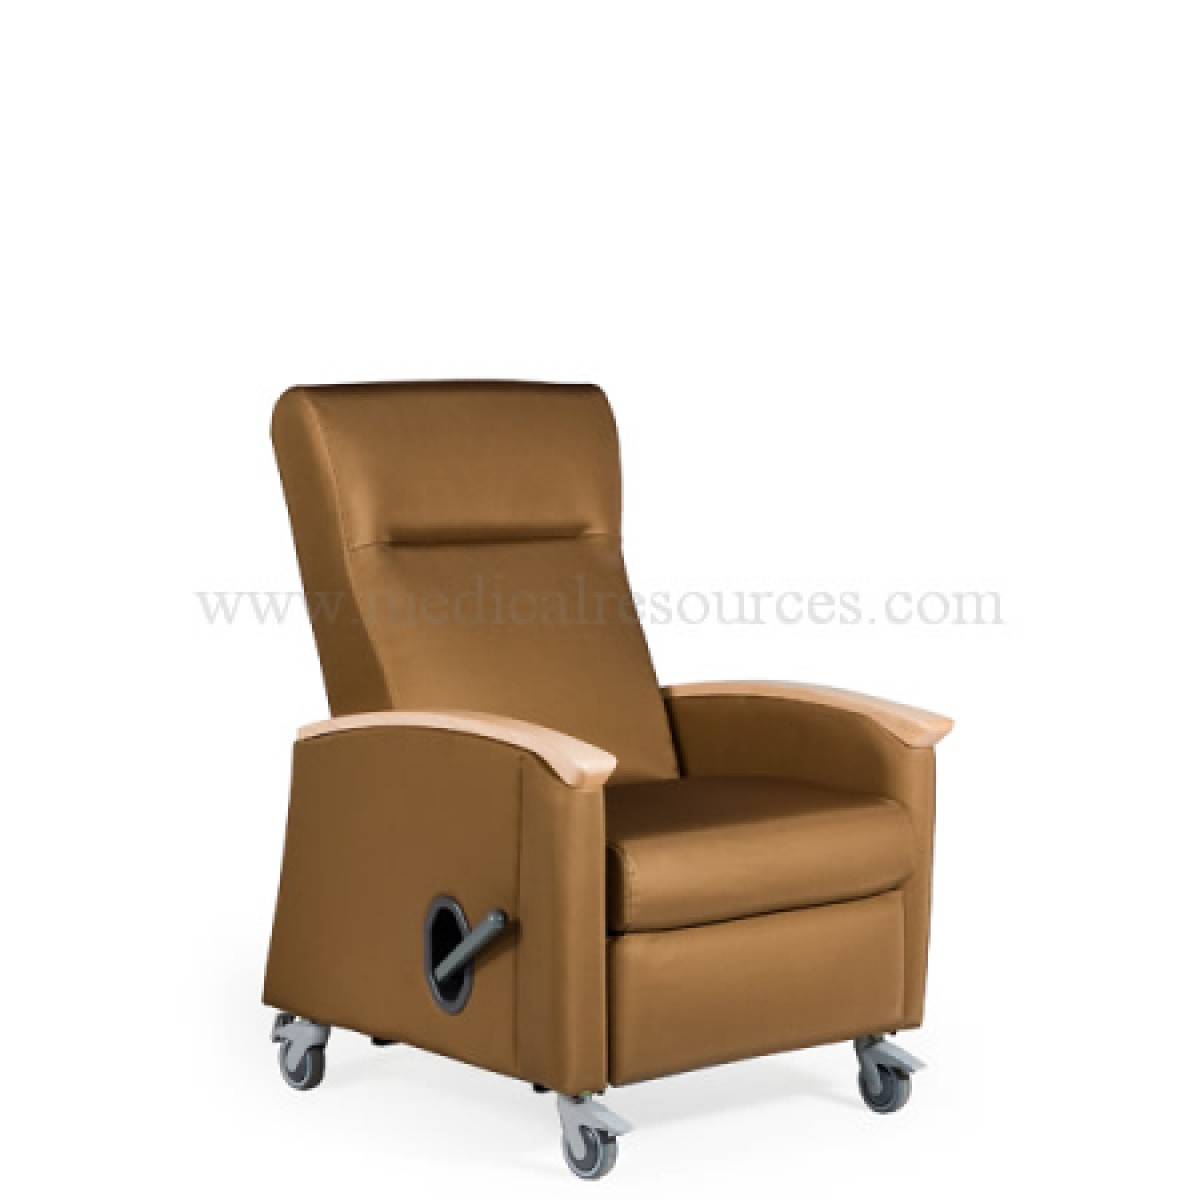 haus hr recliner recliners deutsch am furniture powell product